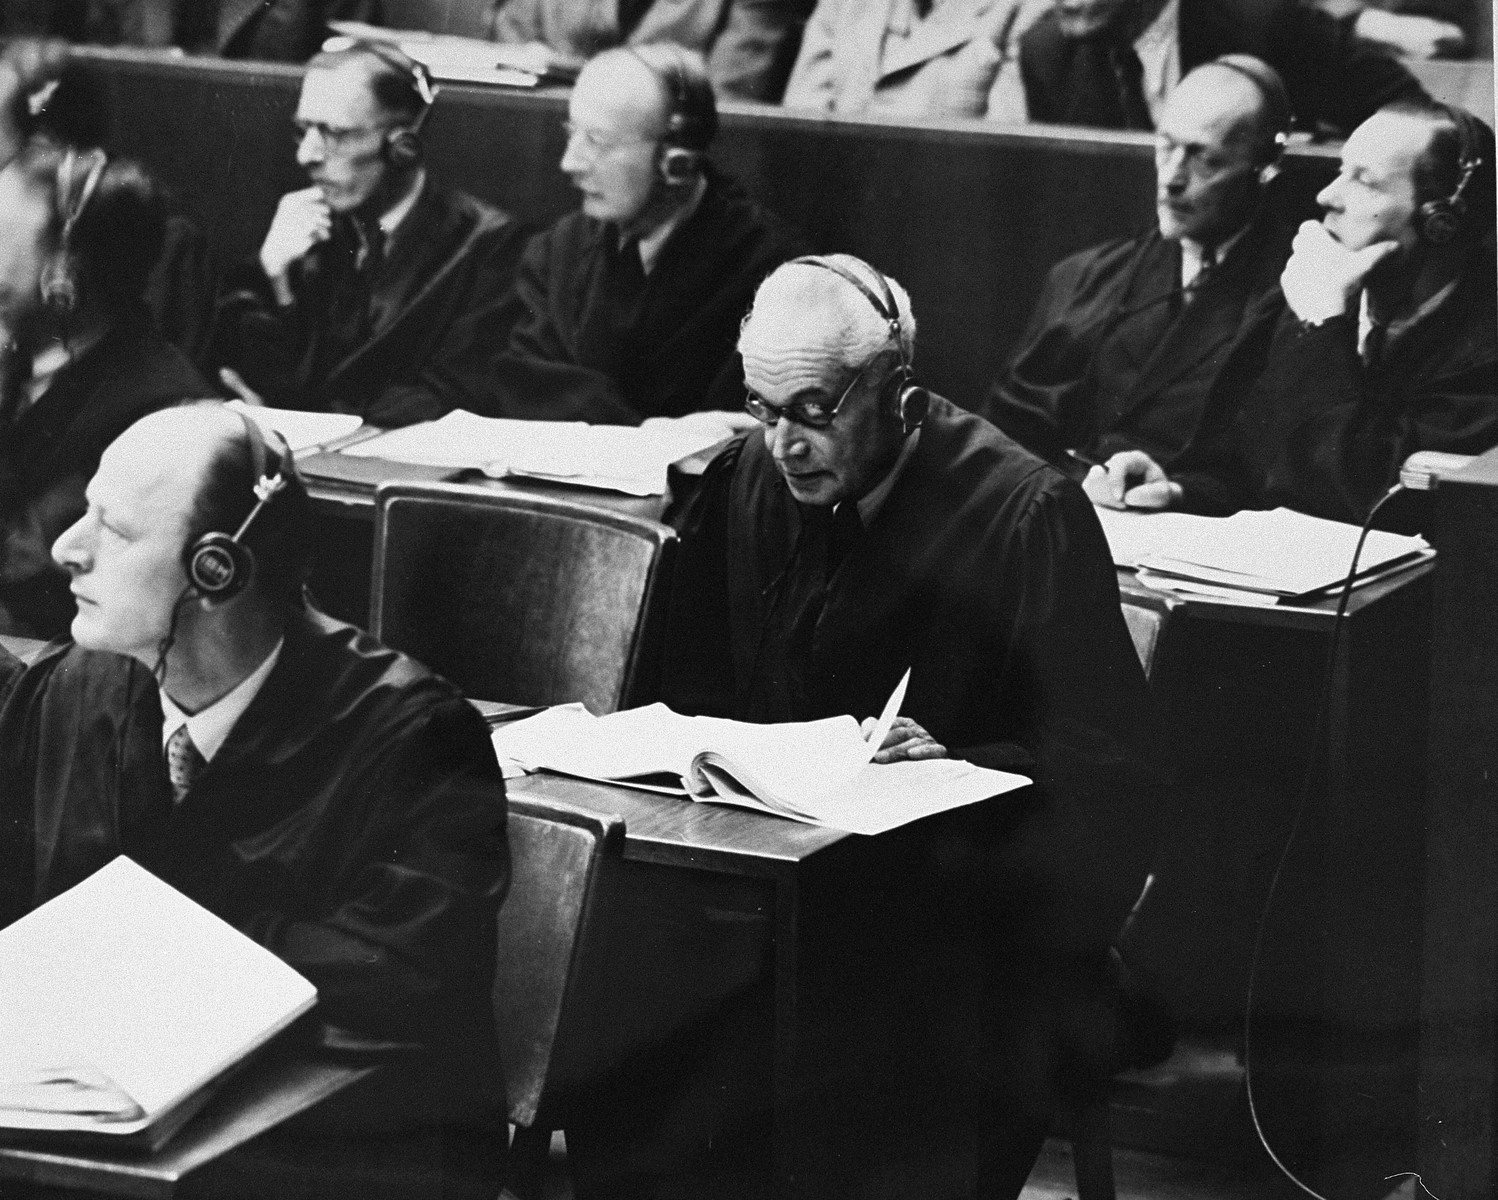 German lawyers for the defense at the International Military Tribunal trial of war criminals at Nuremberg.